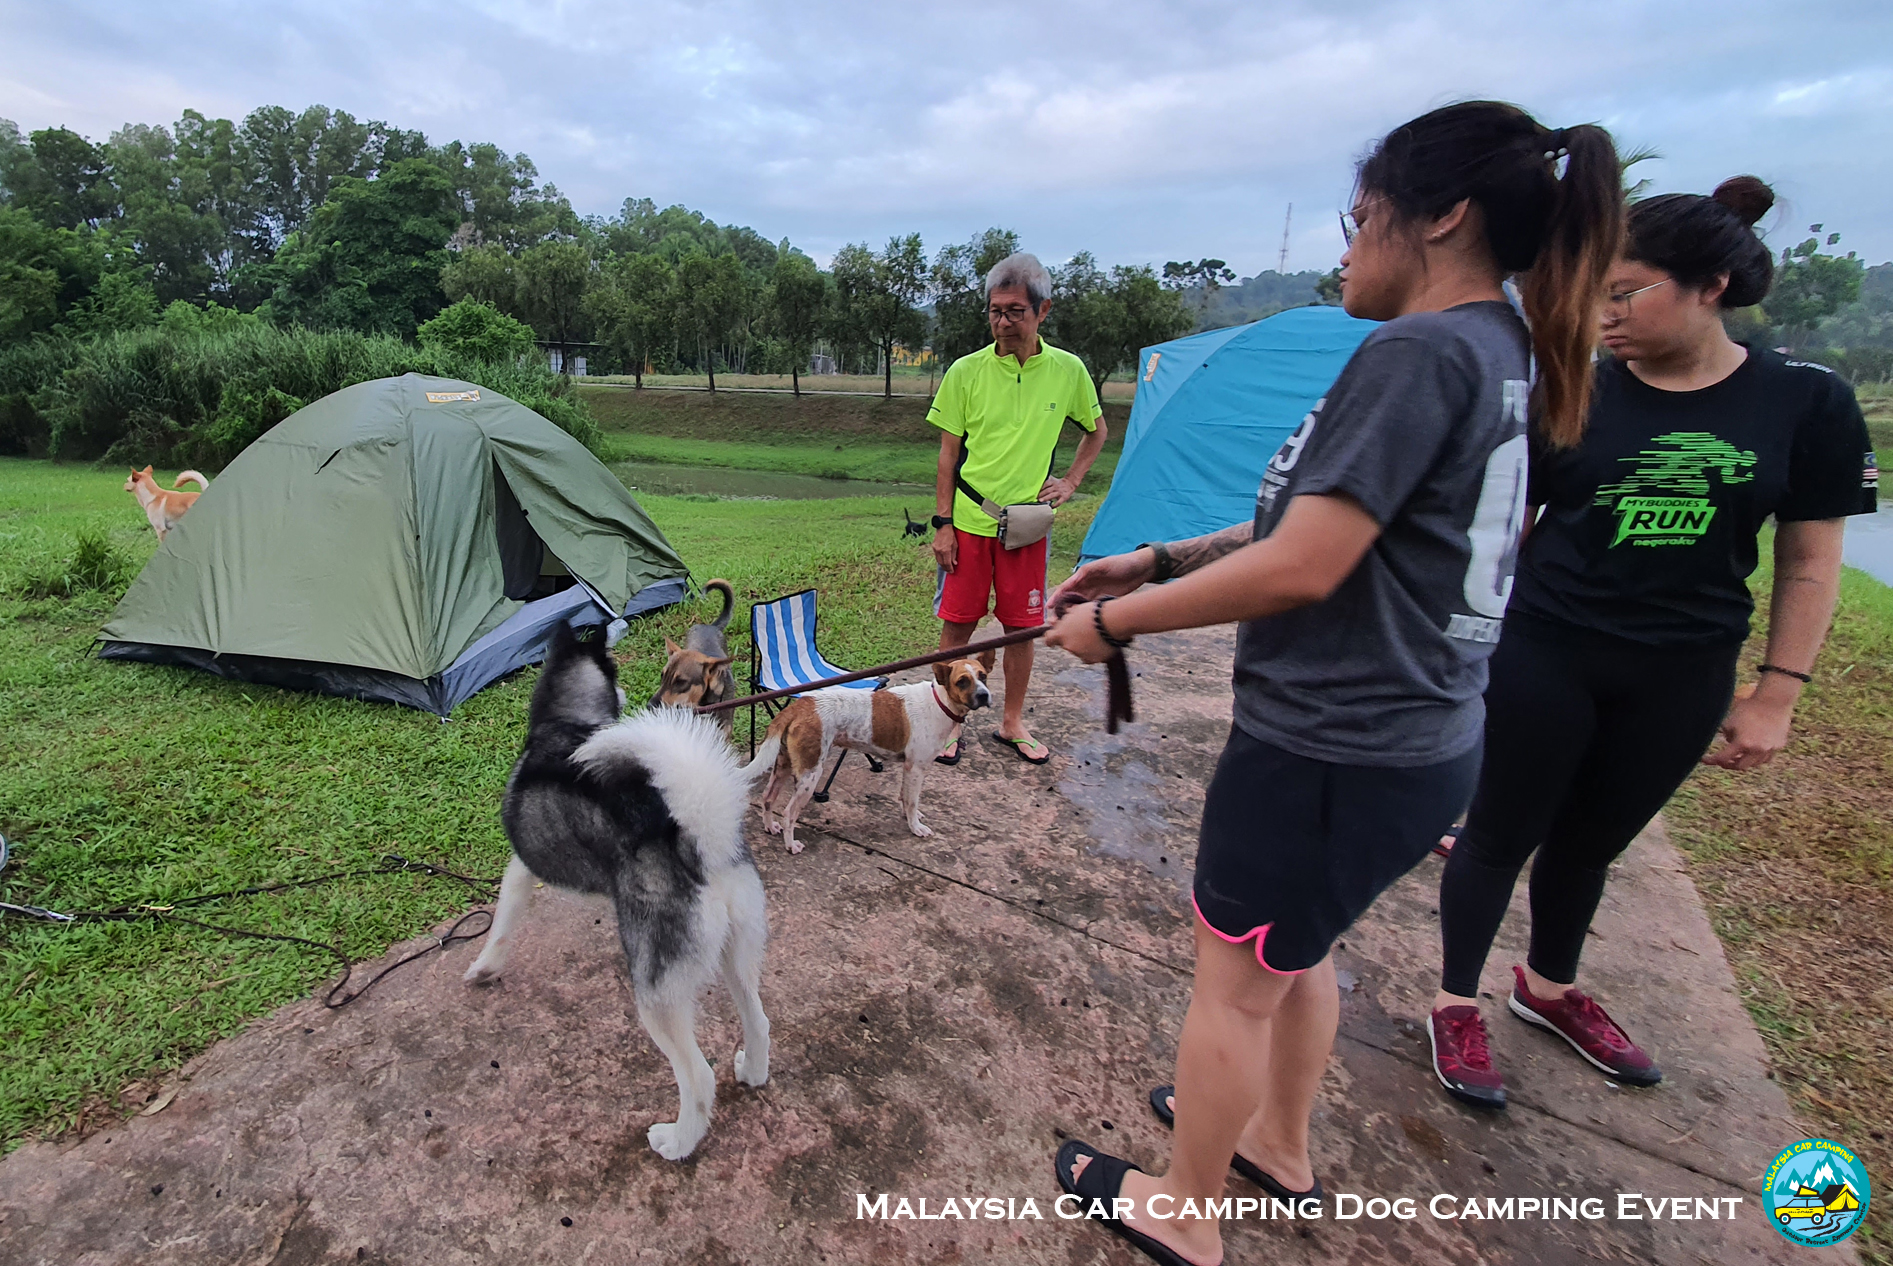 dog_camping_event_selangor_camping_site_malaysia_car_camping_private_event_organizer-5